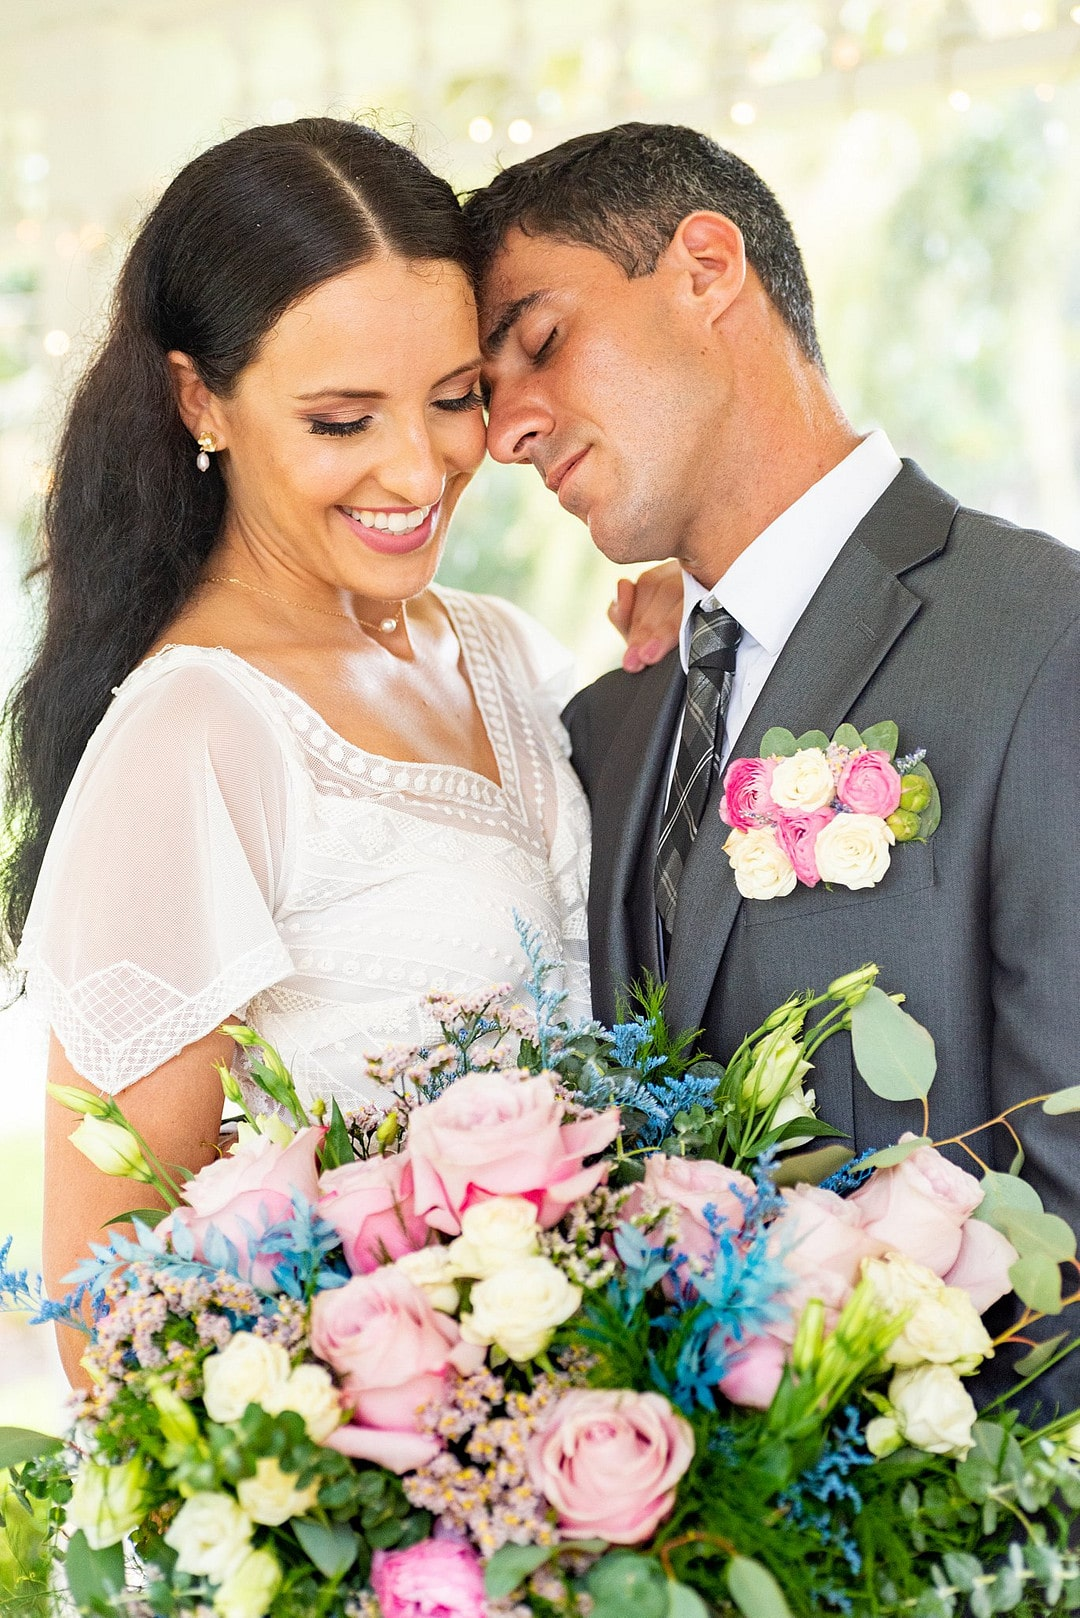 close up of bride and groom touching faces and bride smiling while holding bouquet towards bottom of image and grooms pocket boutonniere